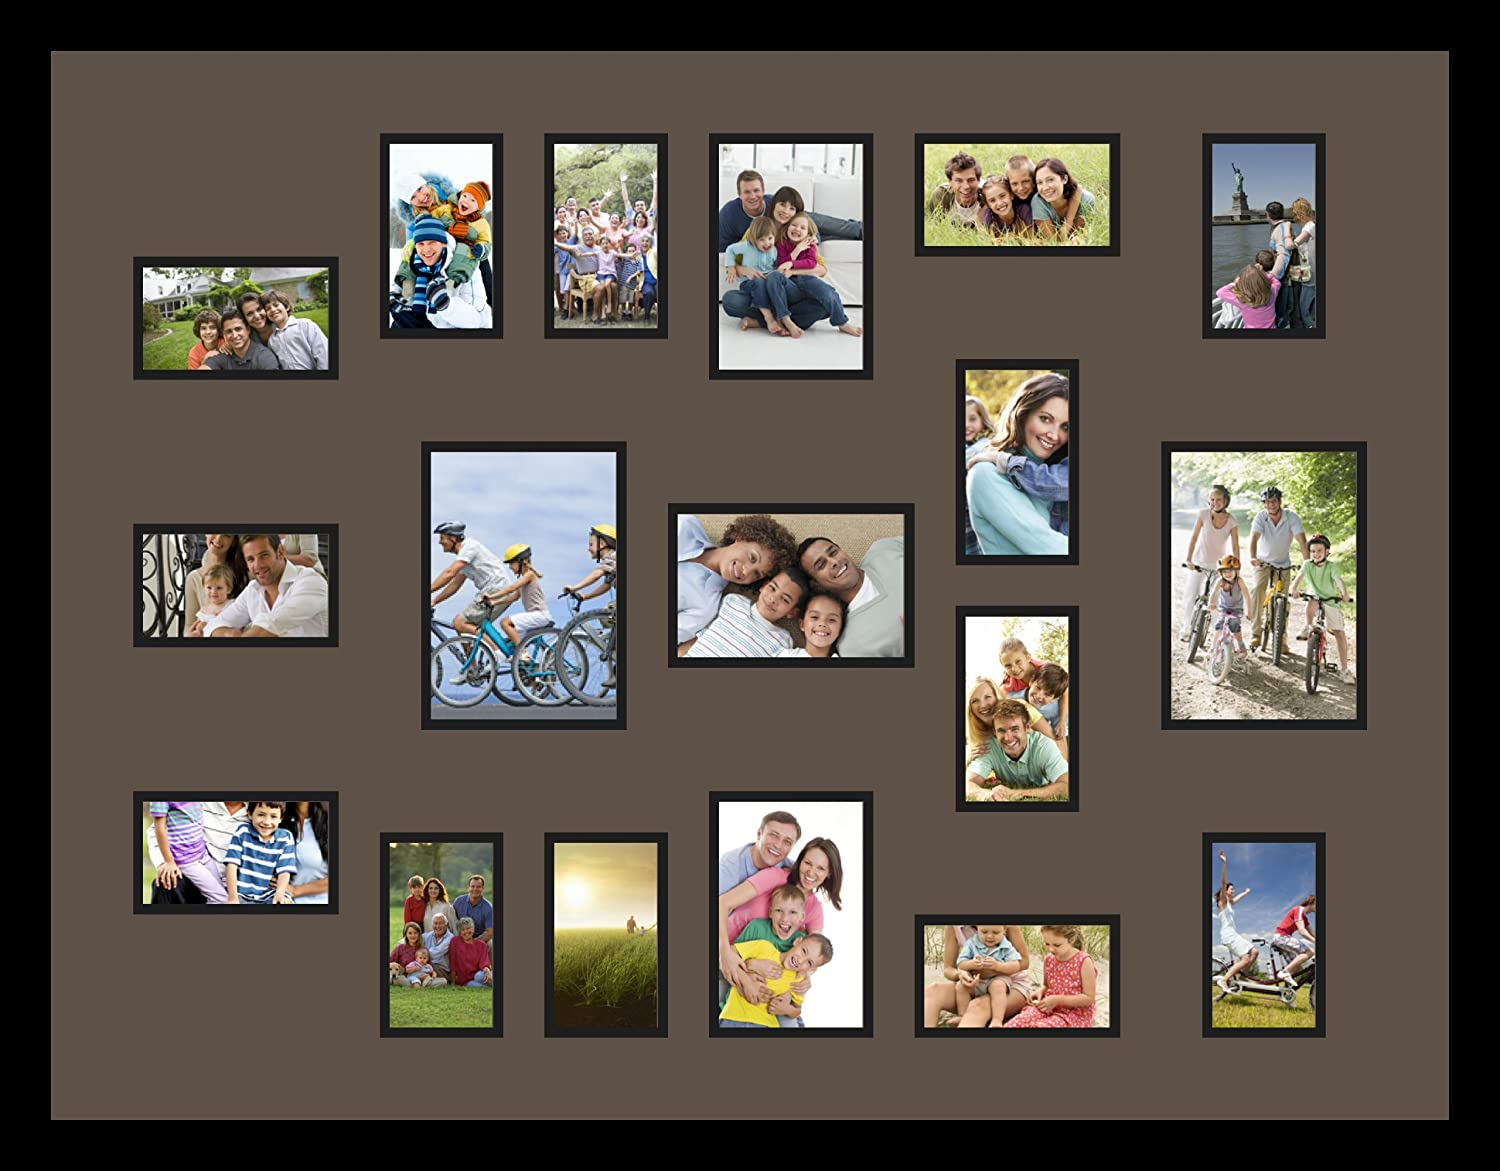 4-Opening Brushed Aluminum Photo Frame Collage Satin Silver Home Decor Gift